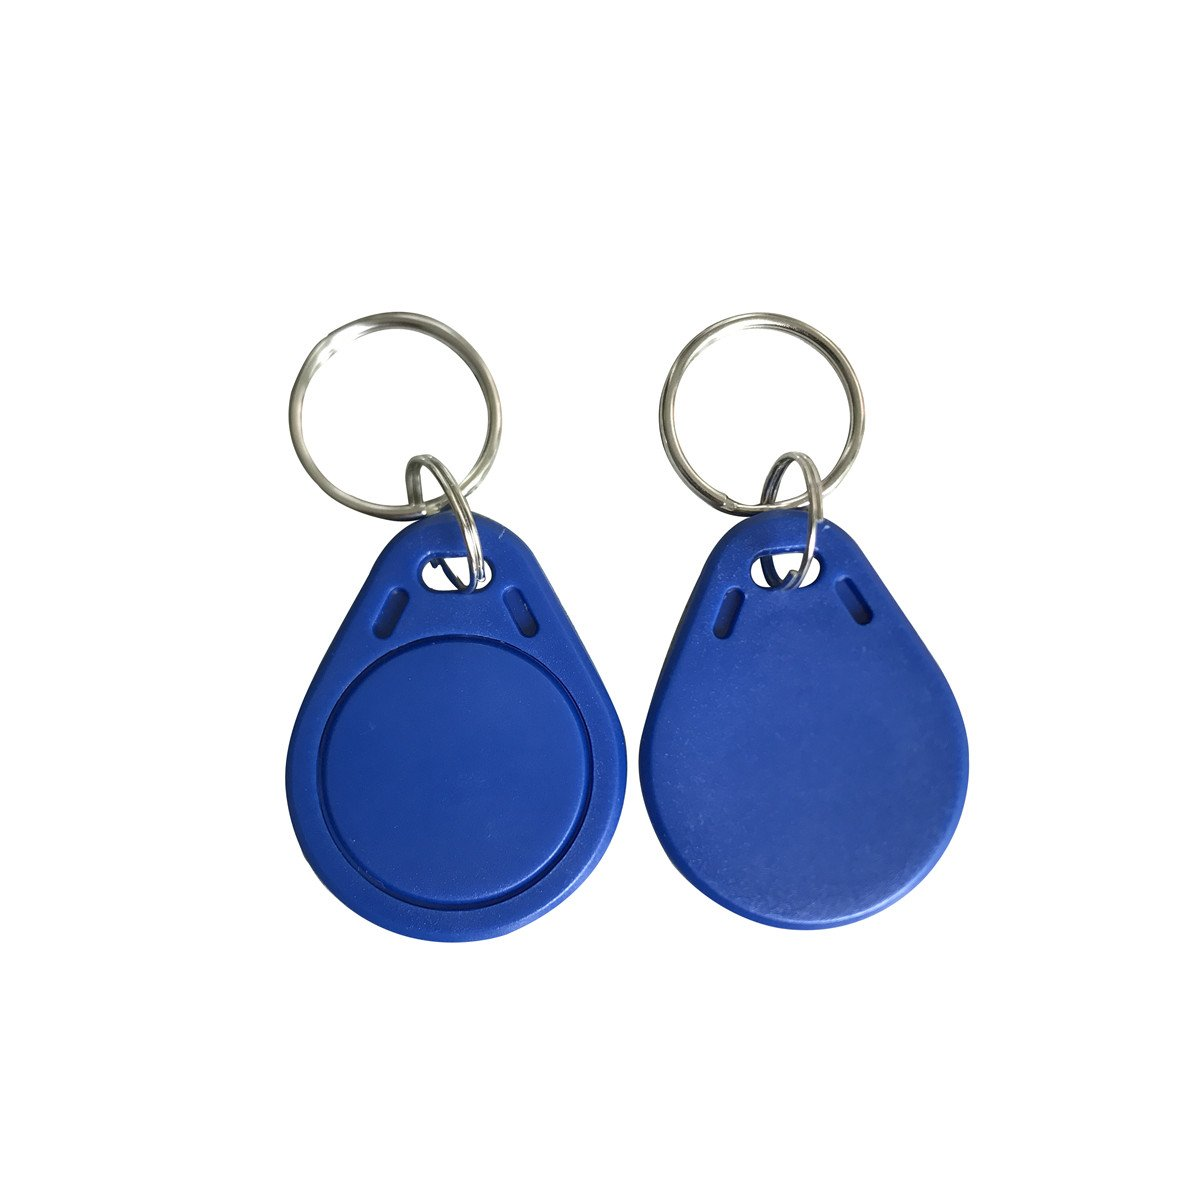 YARONGTECH 13.56MHZ MIFARE Classic 4K blue color RFID door enty access Keyfob Tag Work With RC522 (pack of 10)